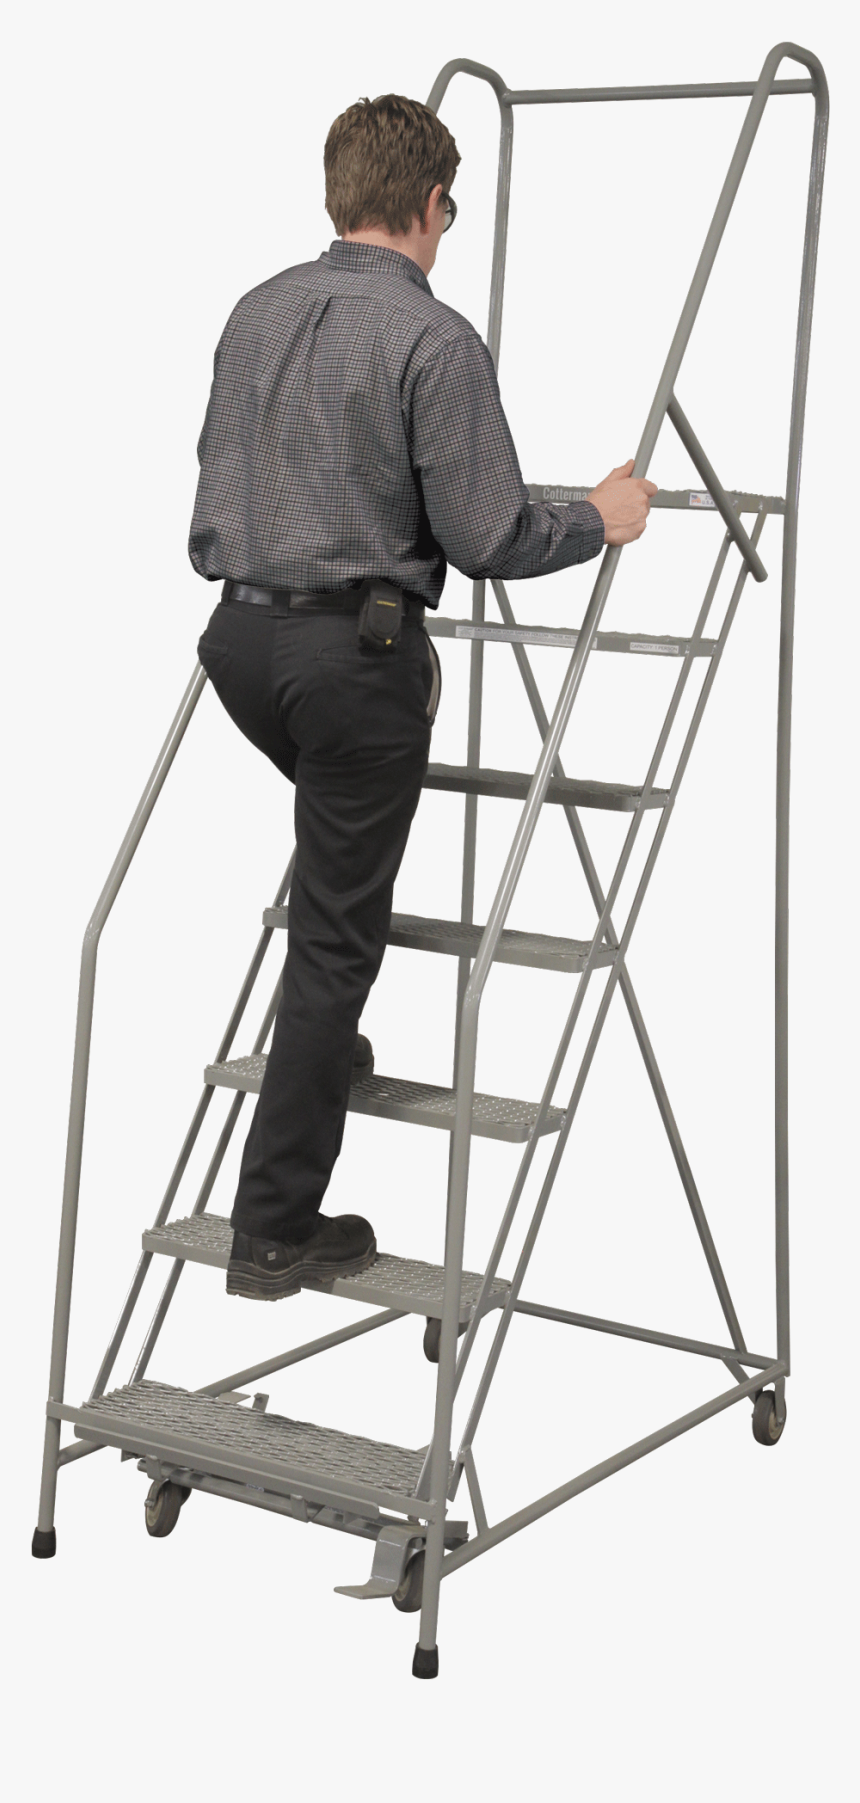 Partially-assembled, Standard Angle Ladders - Cotterman Rolling Ladder, HD Png Download, Free Download